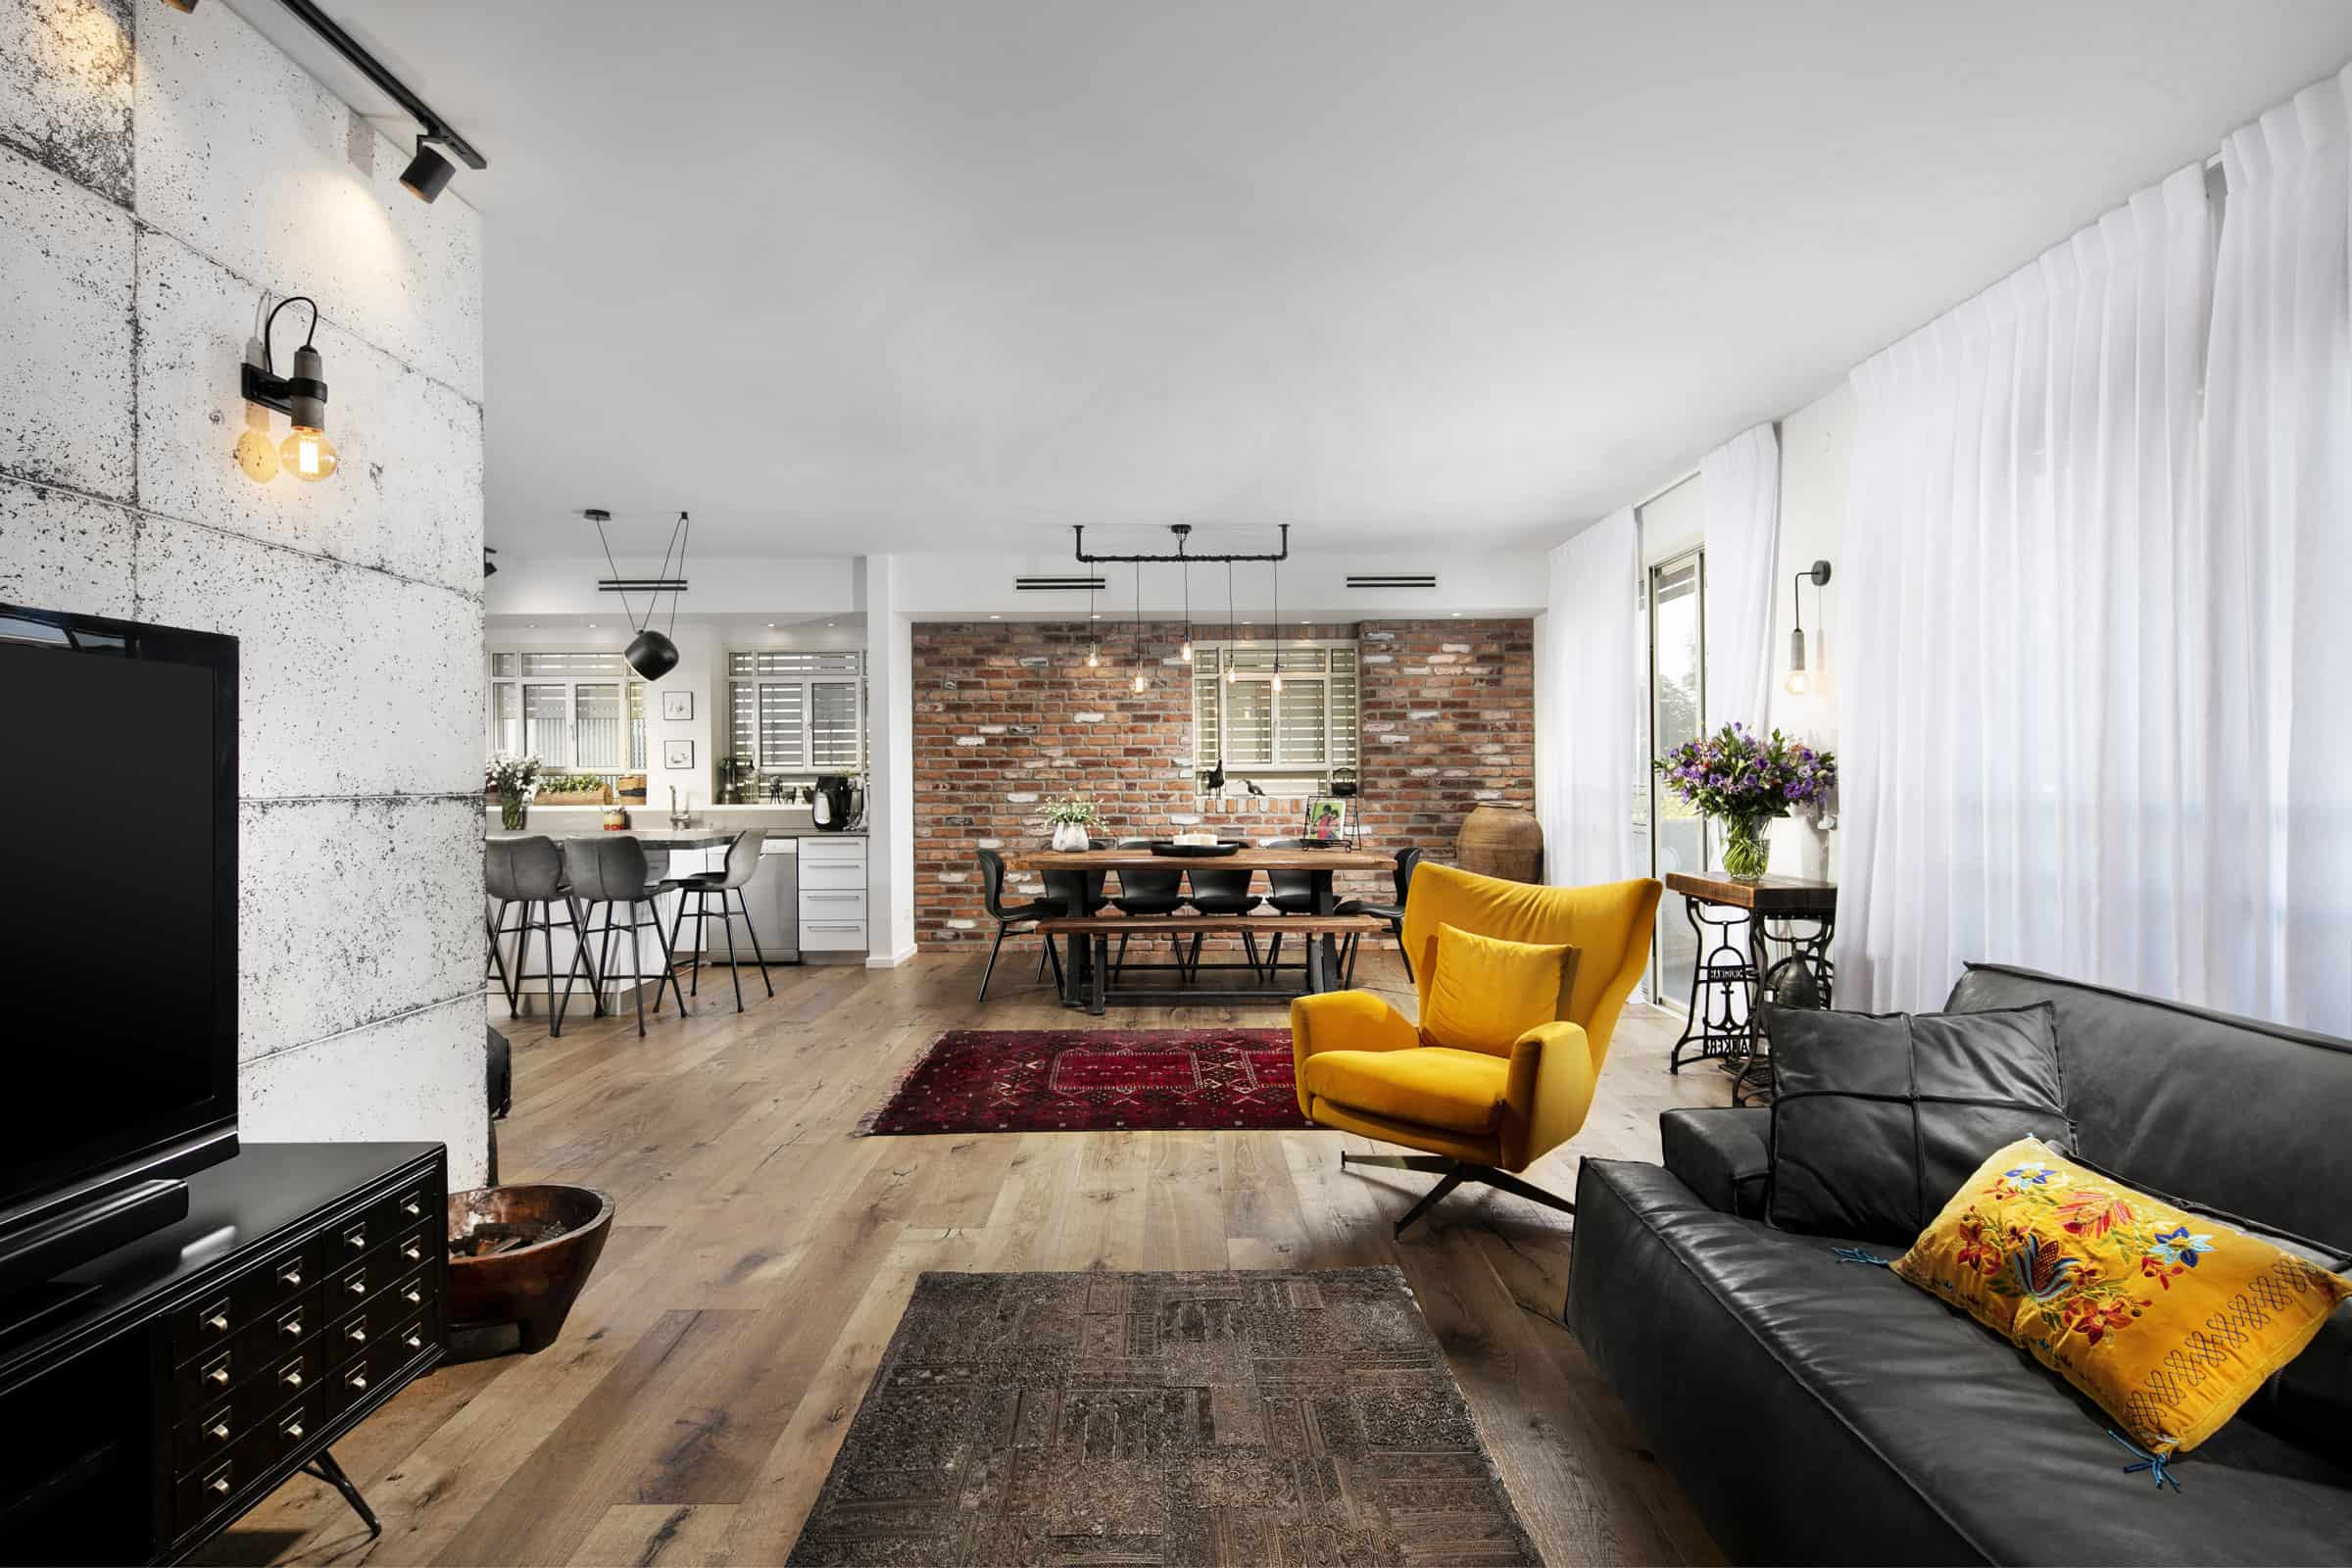 Behind a Manhattan Loft Interior Design Photoshoot